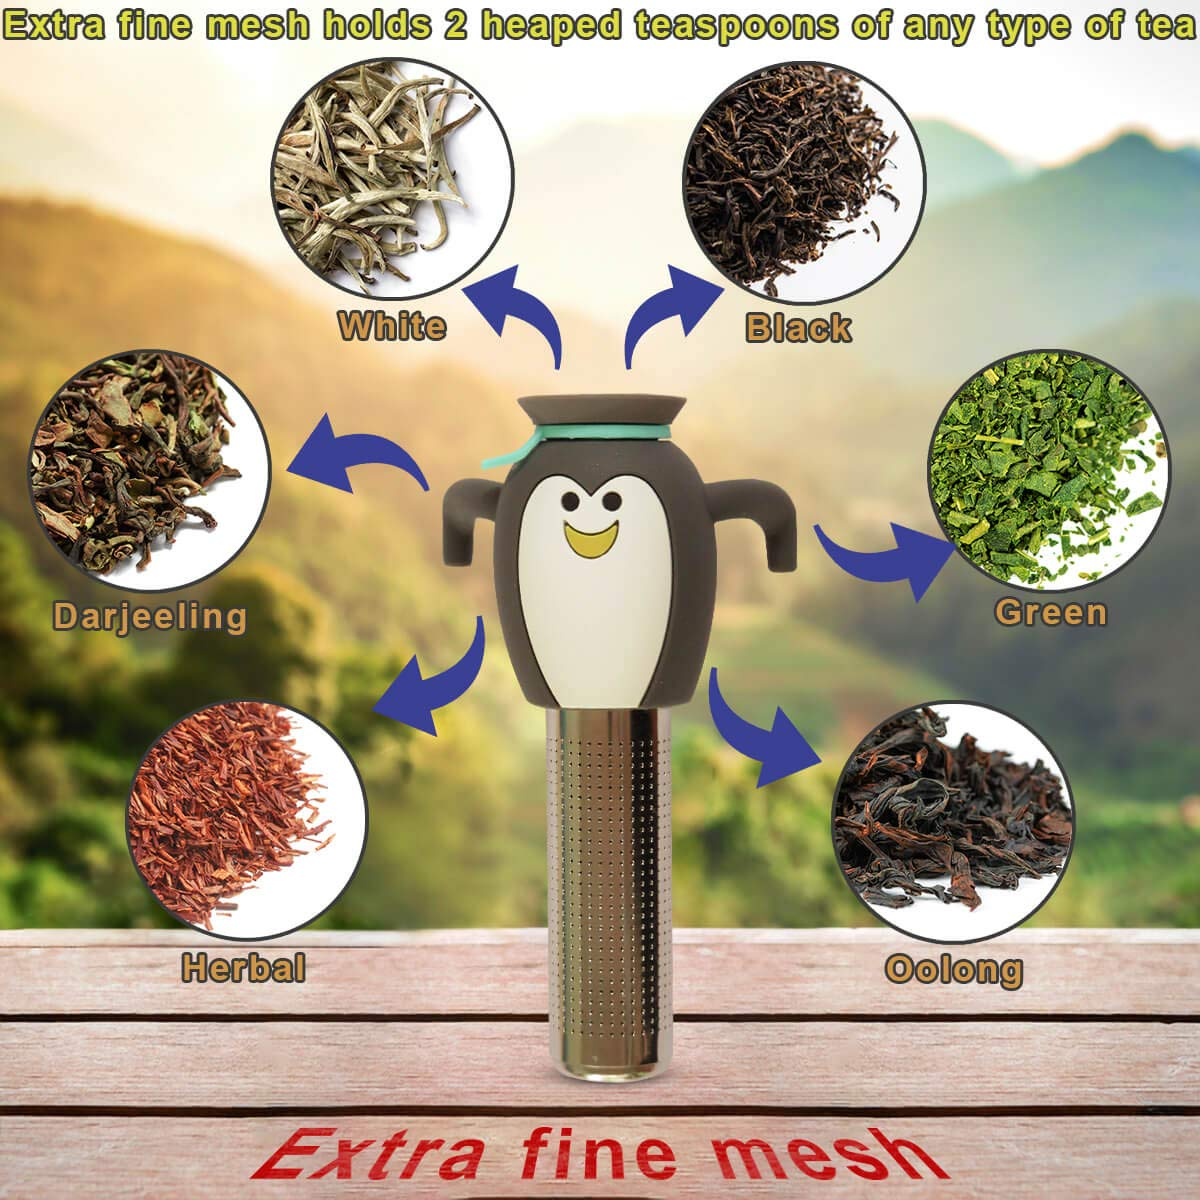 Penguin Tea Infuser For Loose Leaf Tea Cute Mr Penguin Brews The BEST Cup Of Tea With Long Fine Mesh Stick Filter And Own Drip Tray Bean/&Bliss Stainless Steel-Silicone Novelty Tea Infuser-Cutest Smiling Face